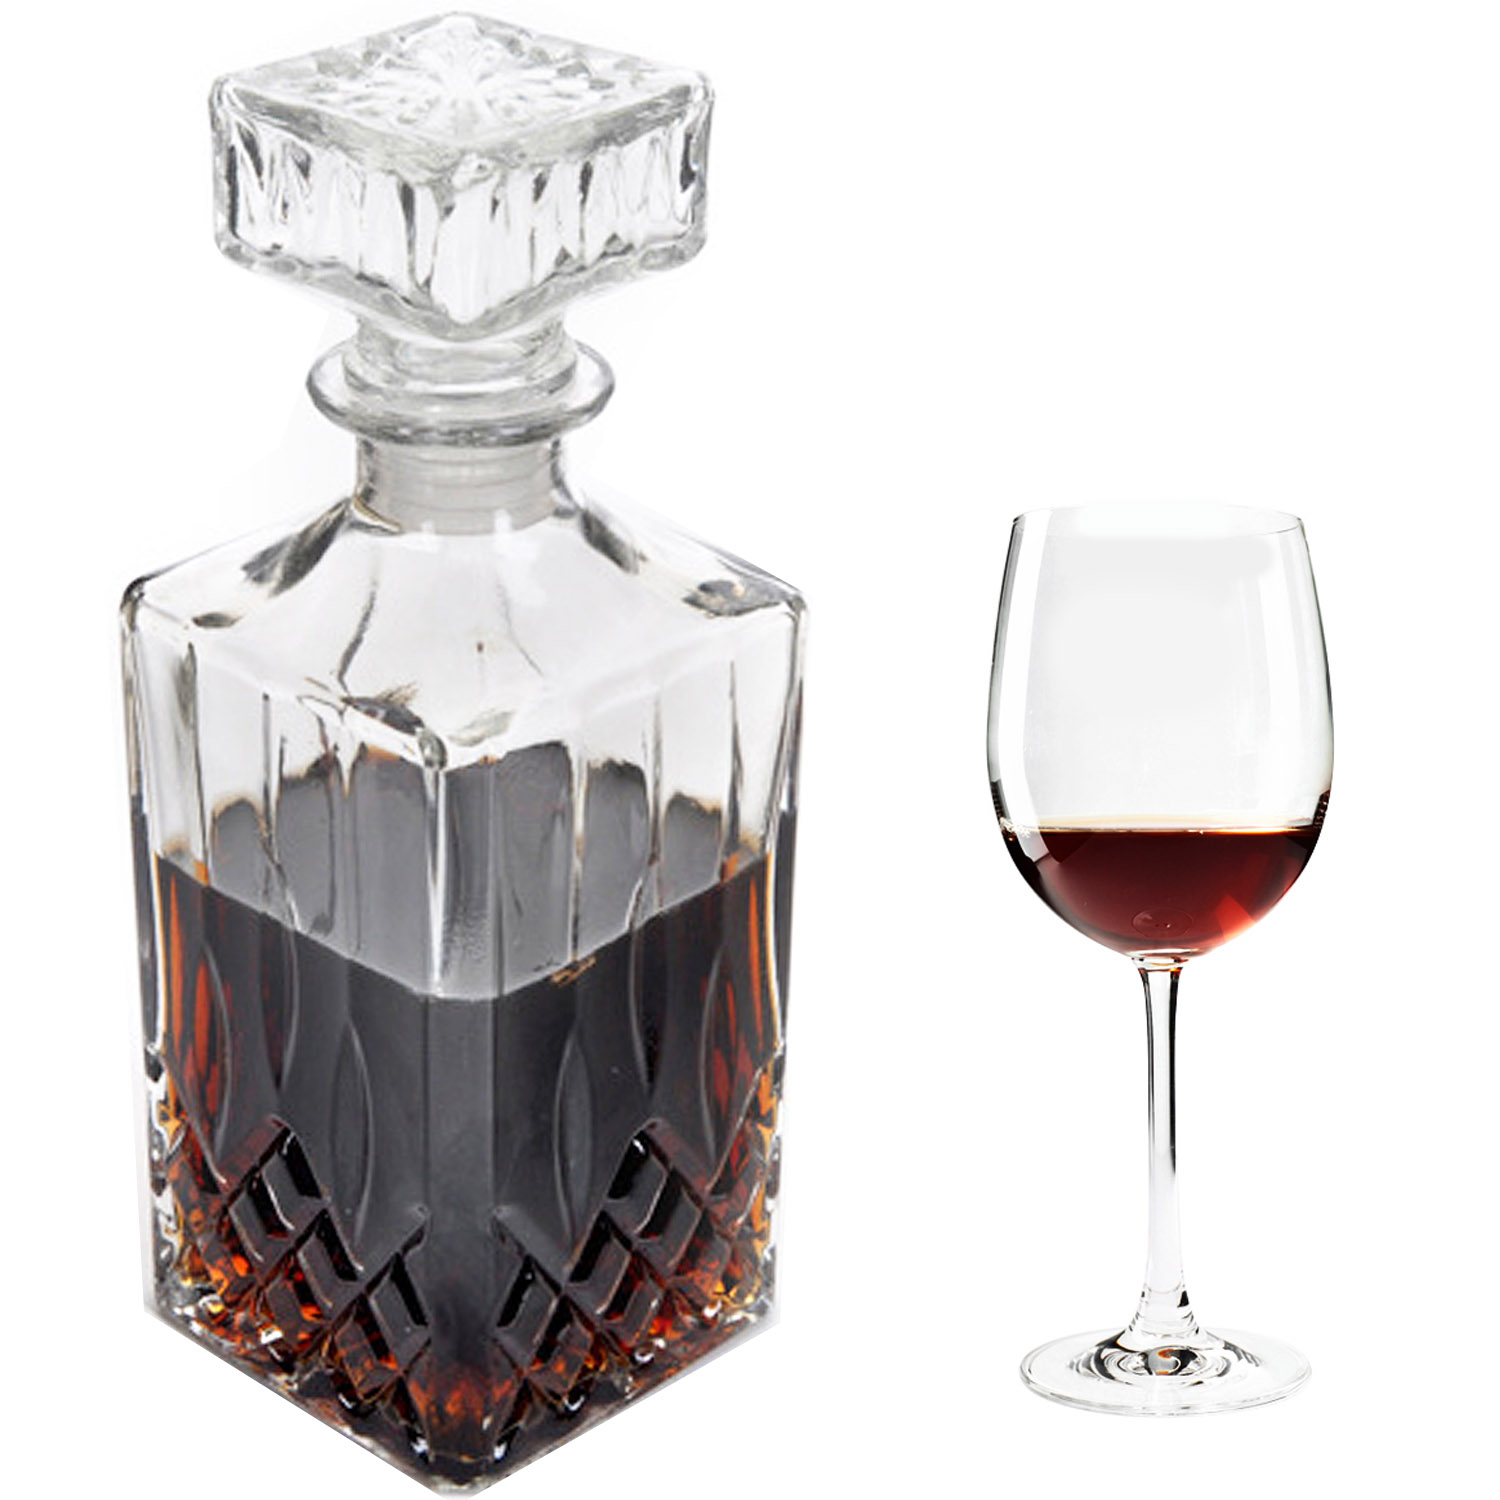 behokic 1000ml european style square glass diy wine beer whisky decanter drink water juice tea milk - Whisky Decanter